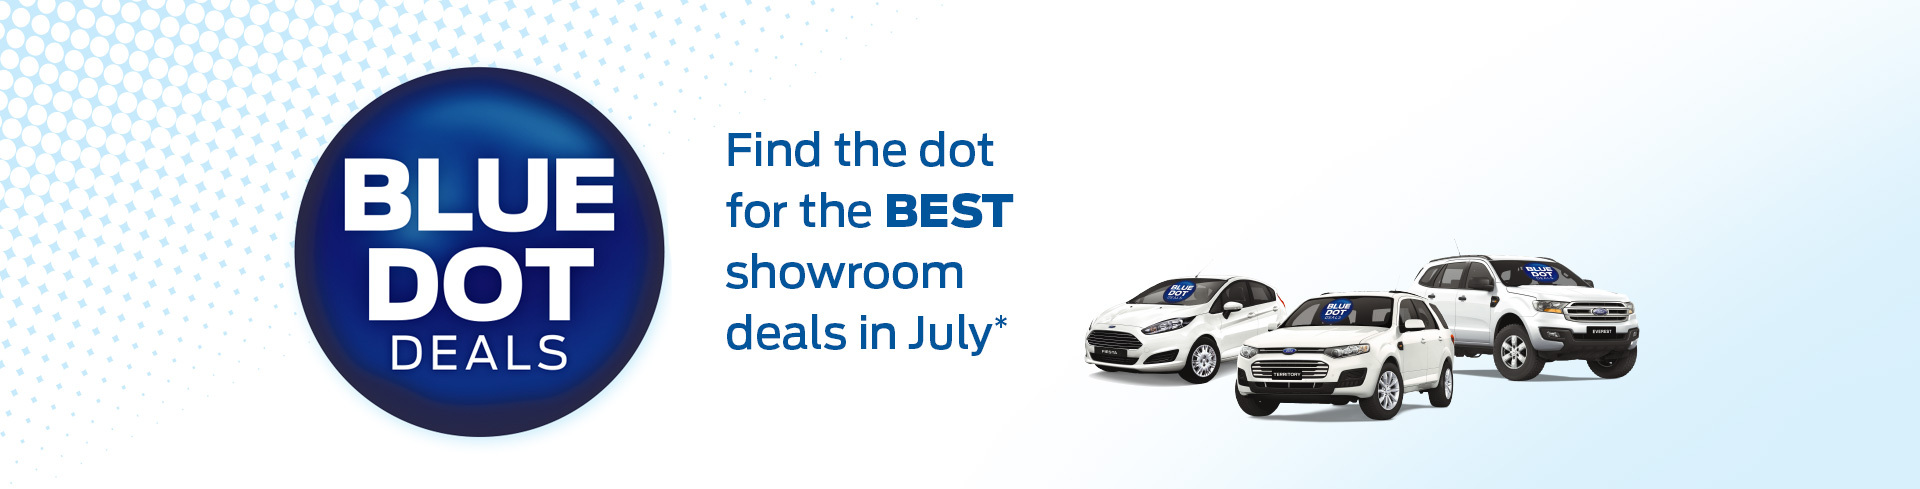 Ford - National Offer 1 - Blue Dot Sale; Get Great Showroom Deals